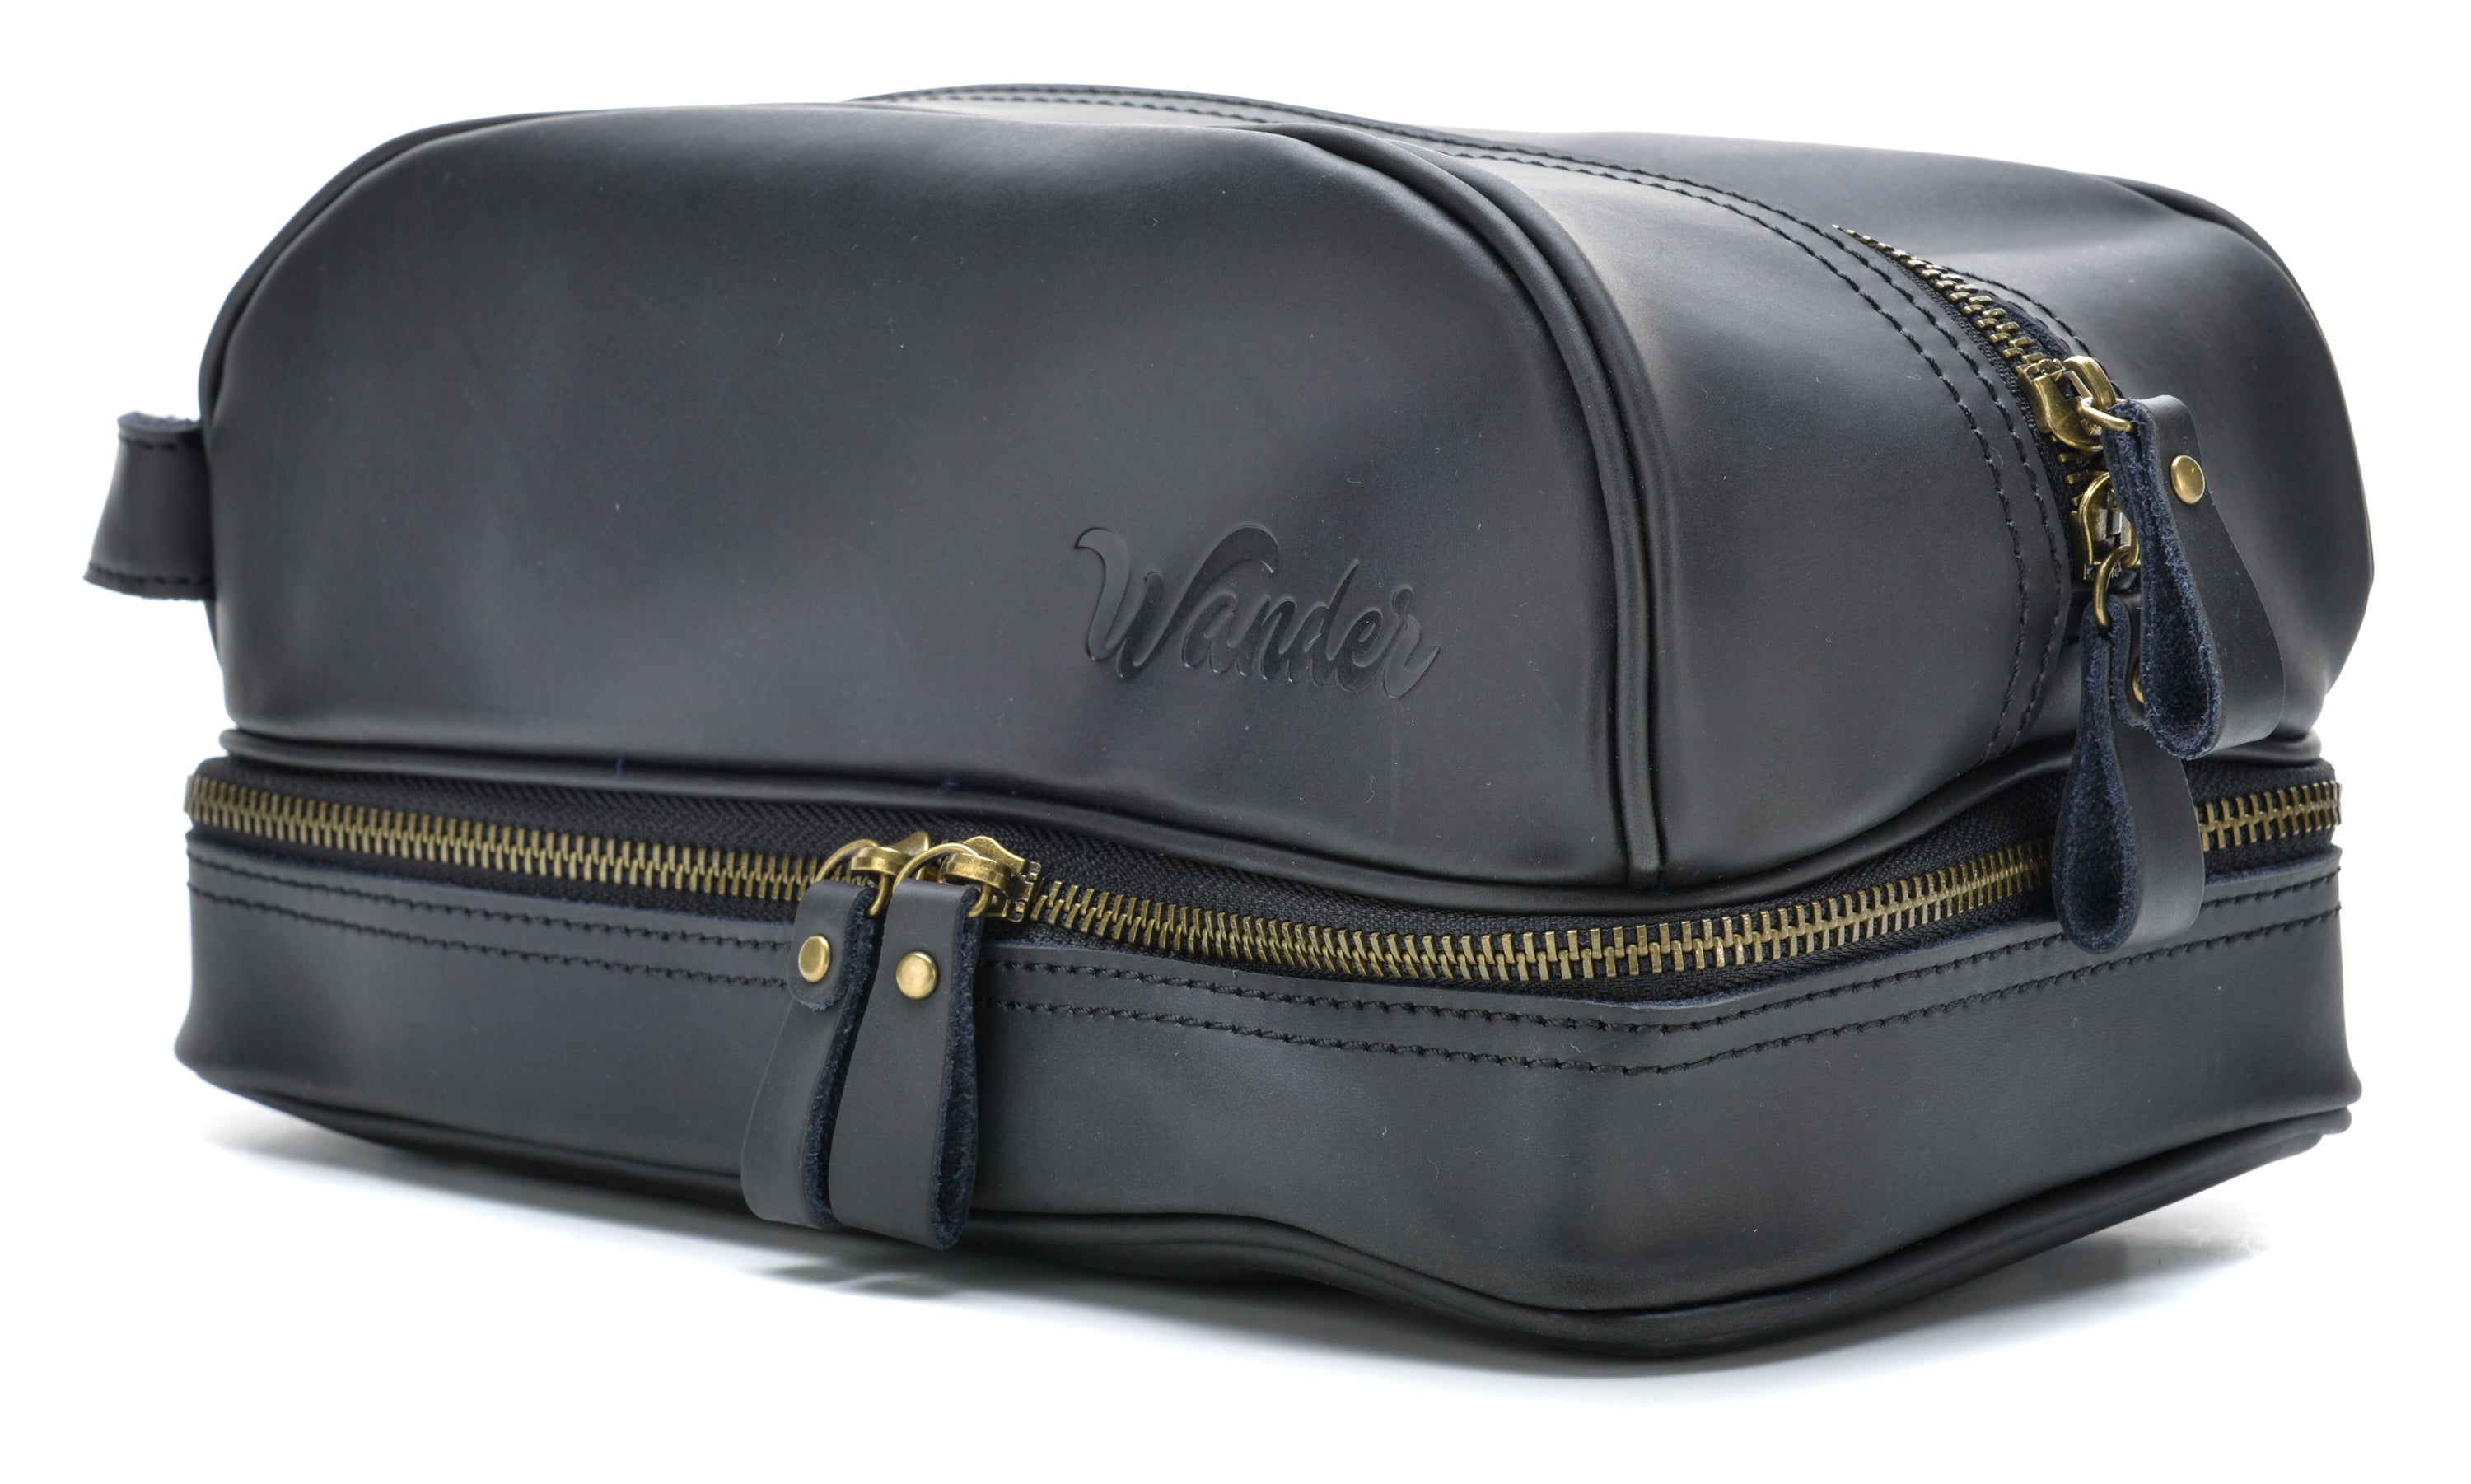 2b1741450ef0 Black Toiletry Bag colorway - Wander Travel and Supply